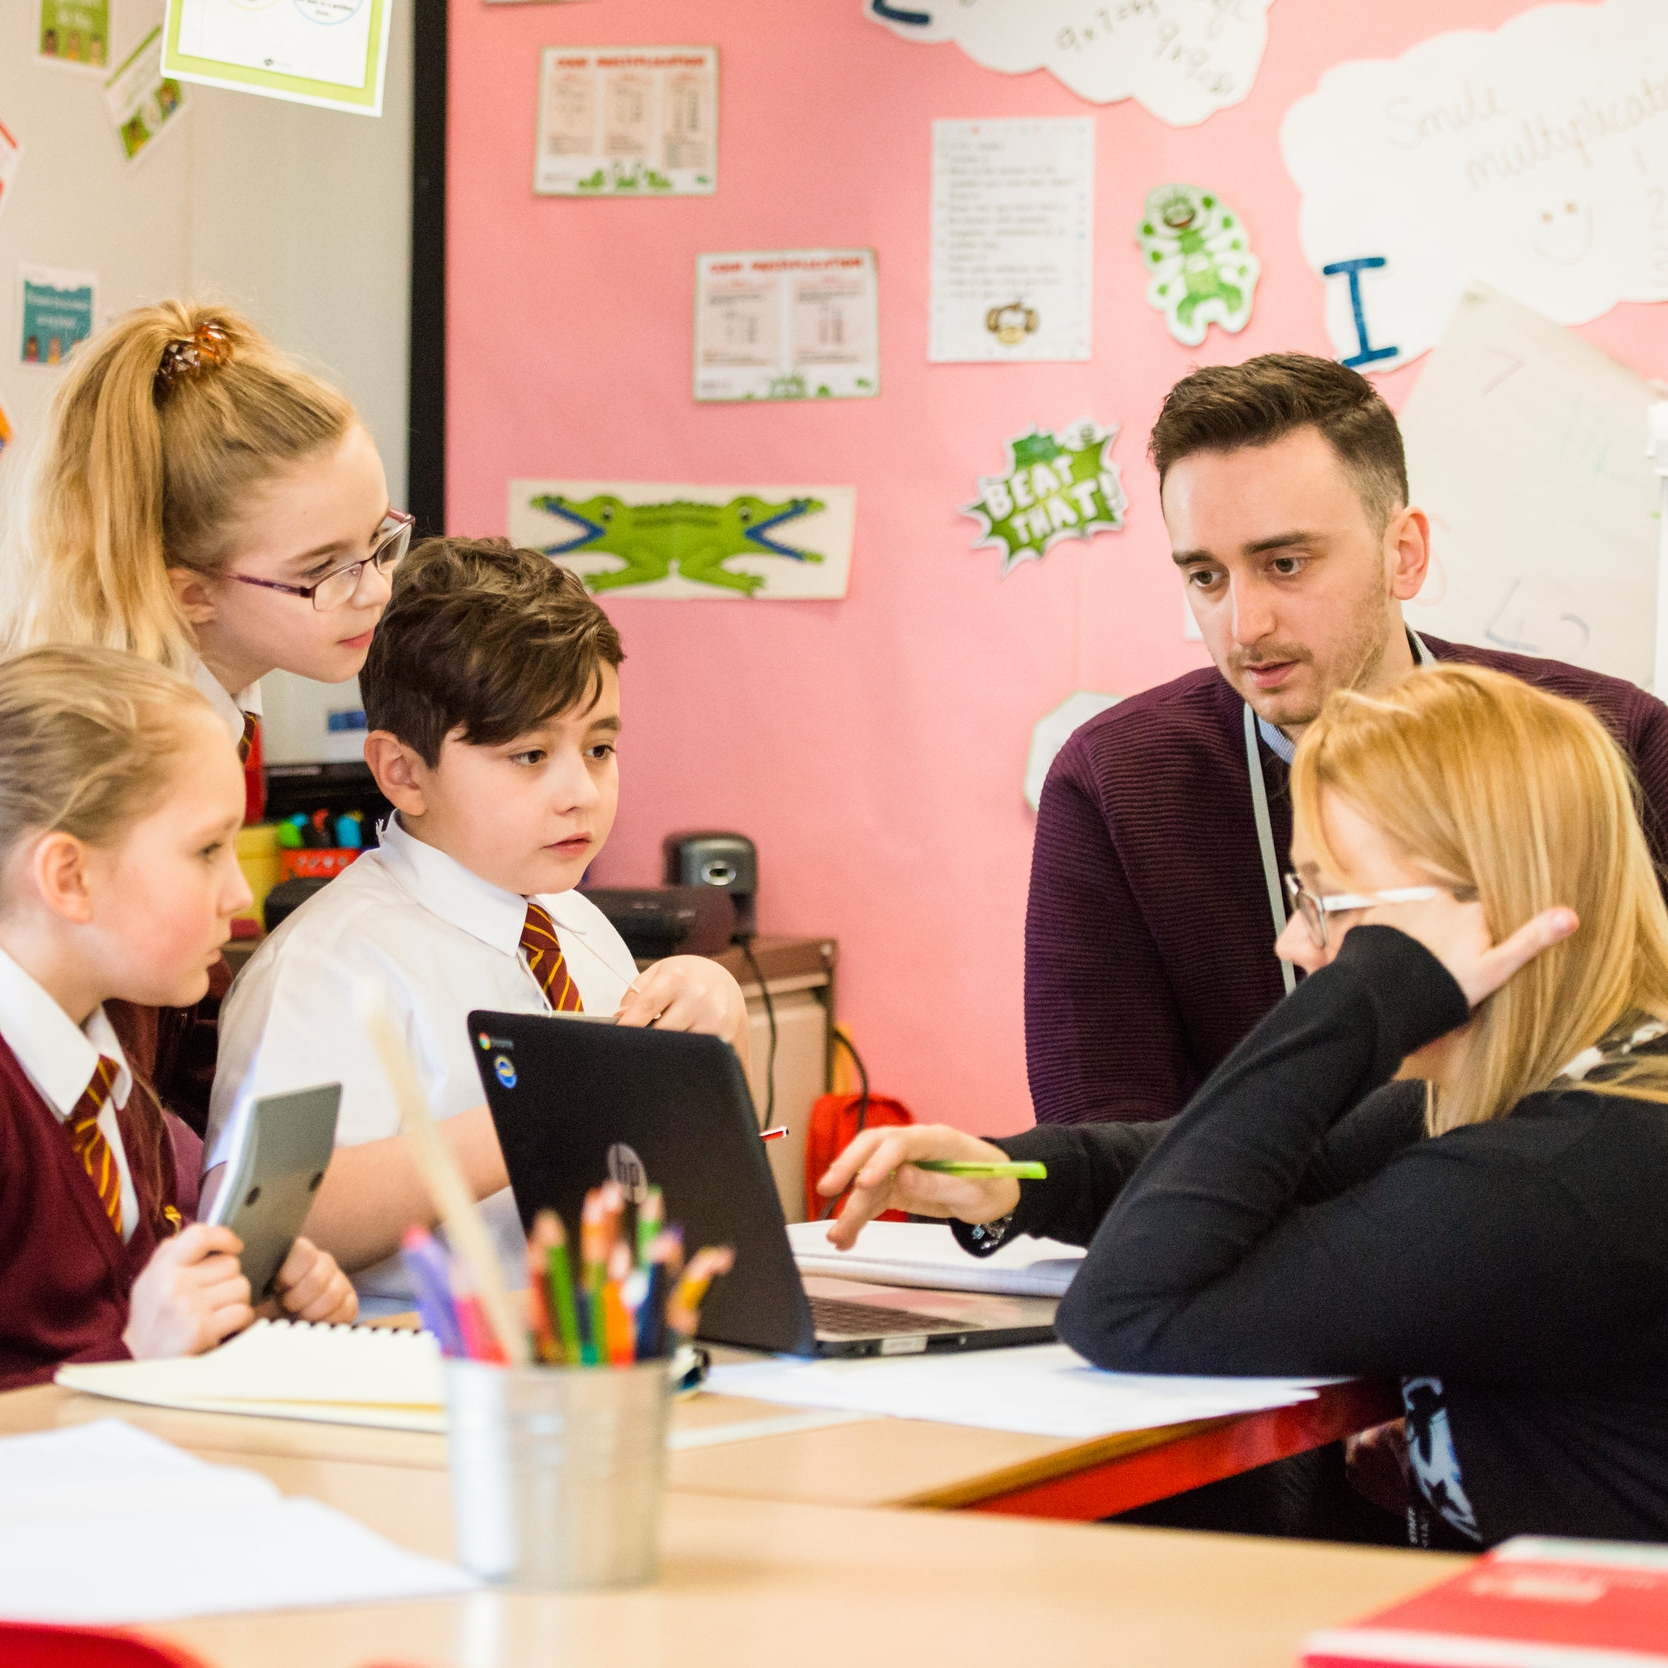 Classroom Resources - Five Big Questions About Money helps pupils to explore where money comes from, how it makes us feel, what we can use money for, how it can be used to help others, and how we look after it.Read more and download